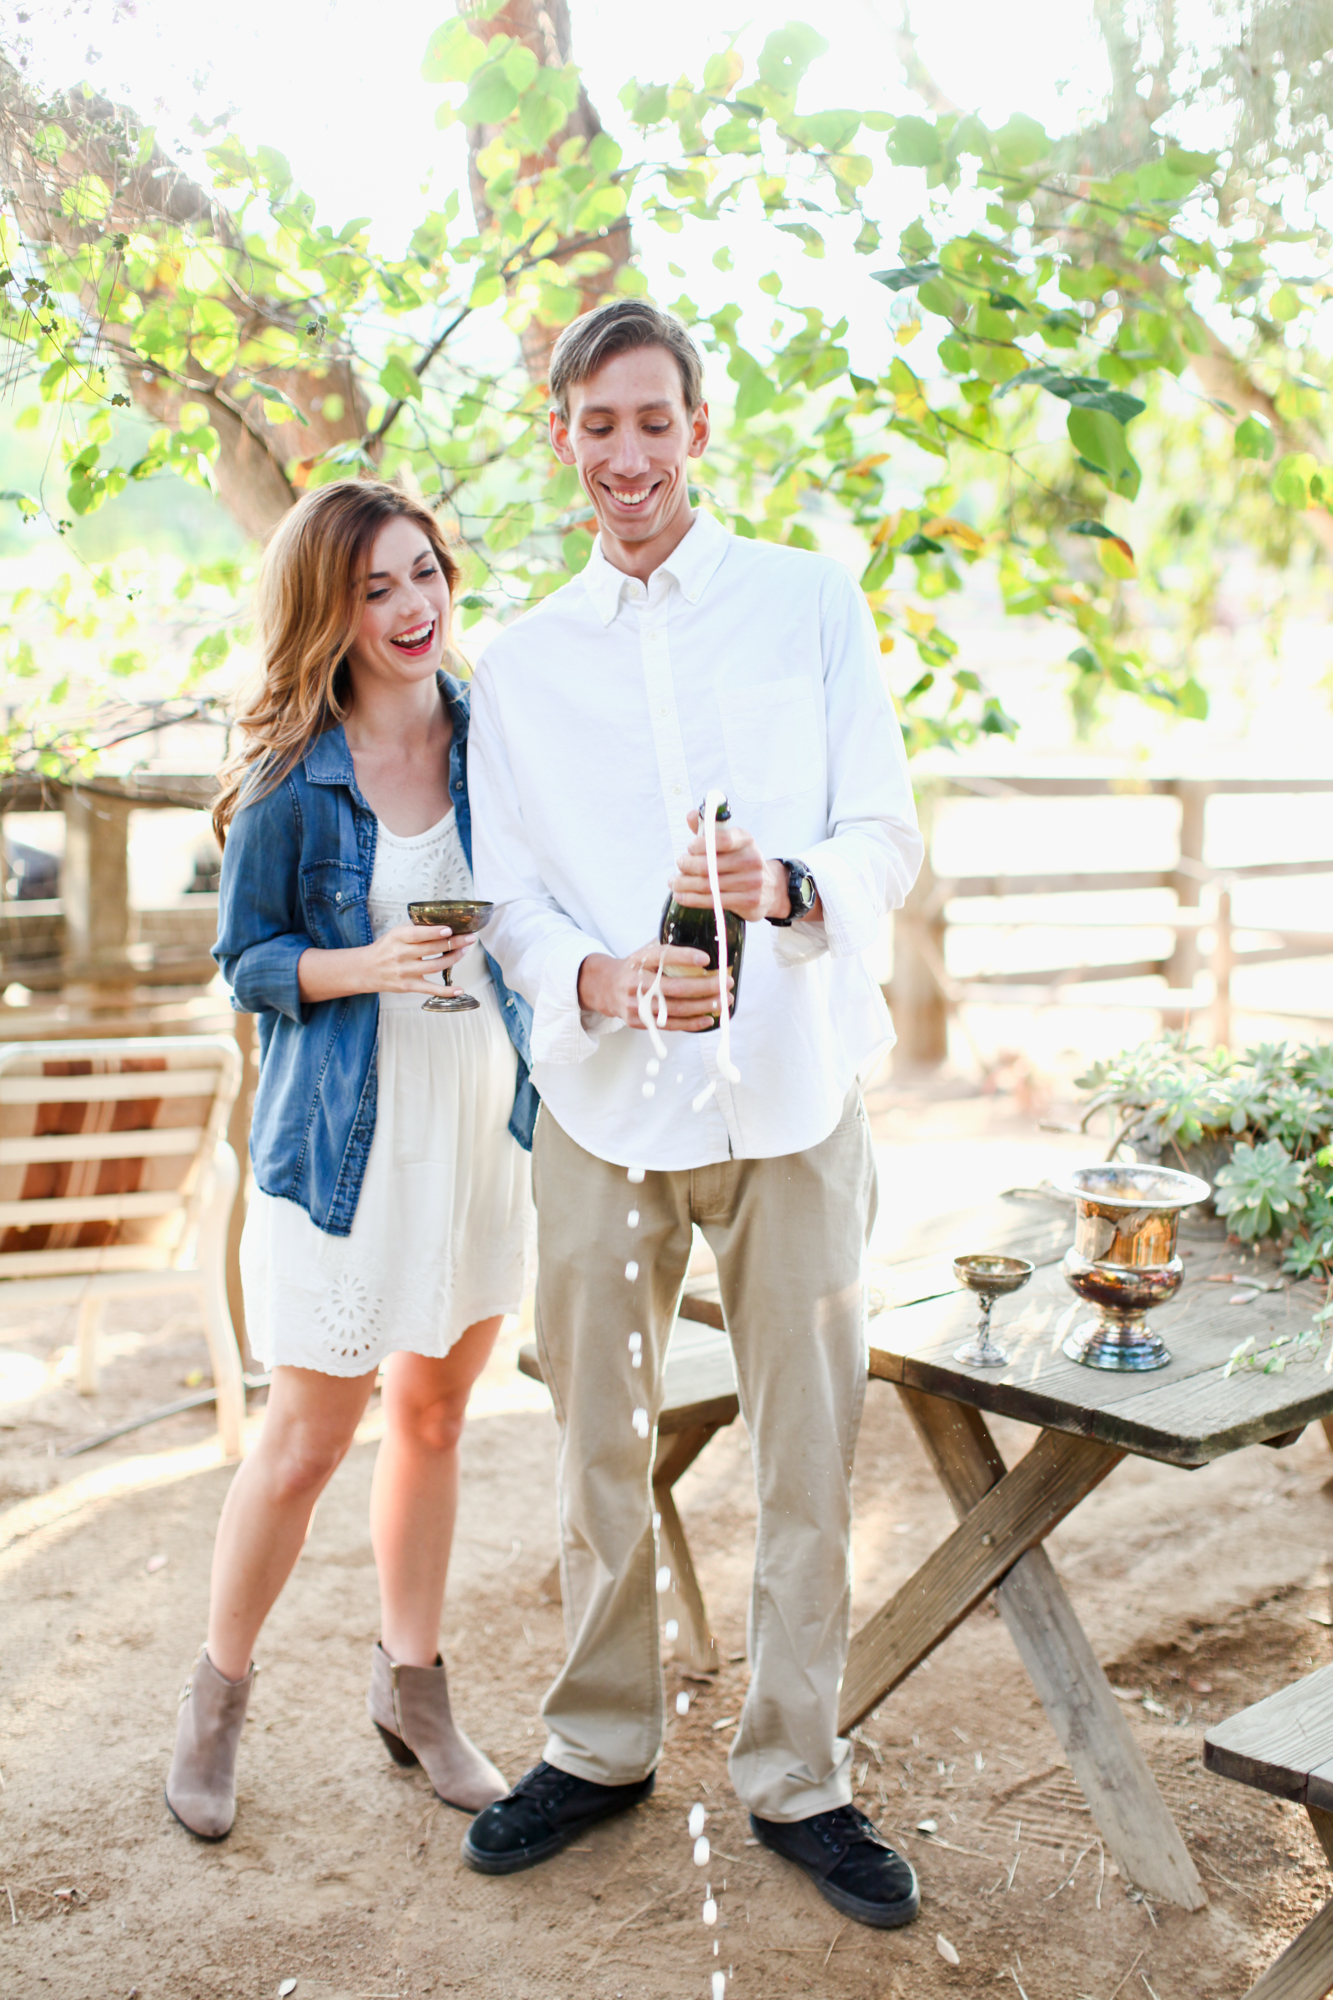 Lovisa Photo- Engagement Photography- Temecula Wine Country, California- Inland Empire